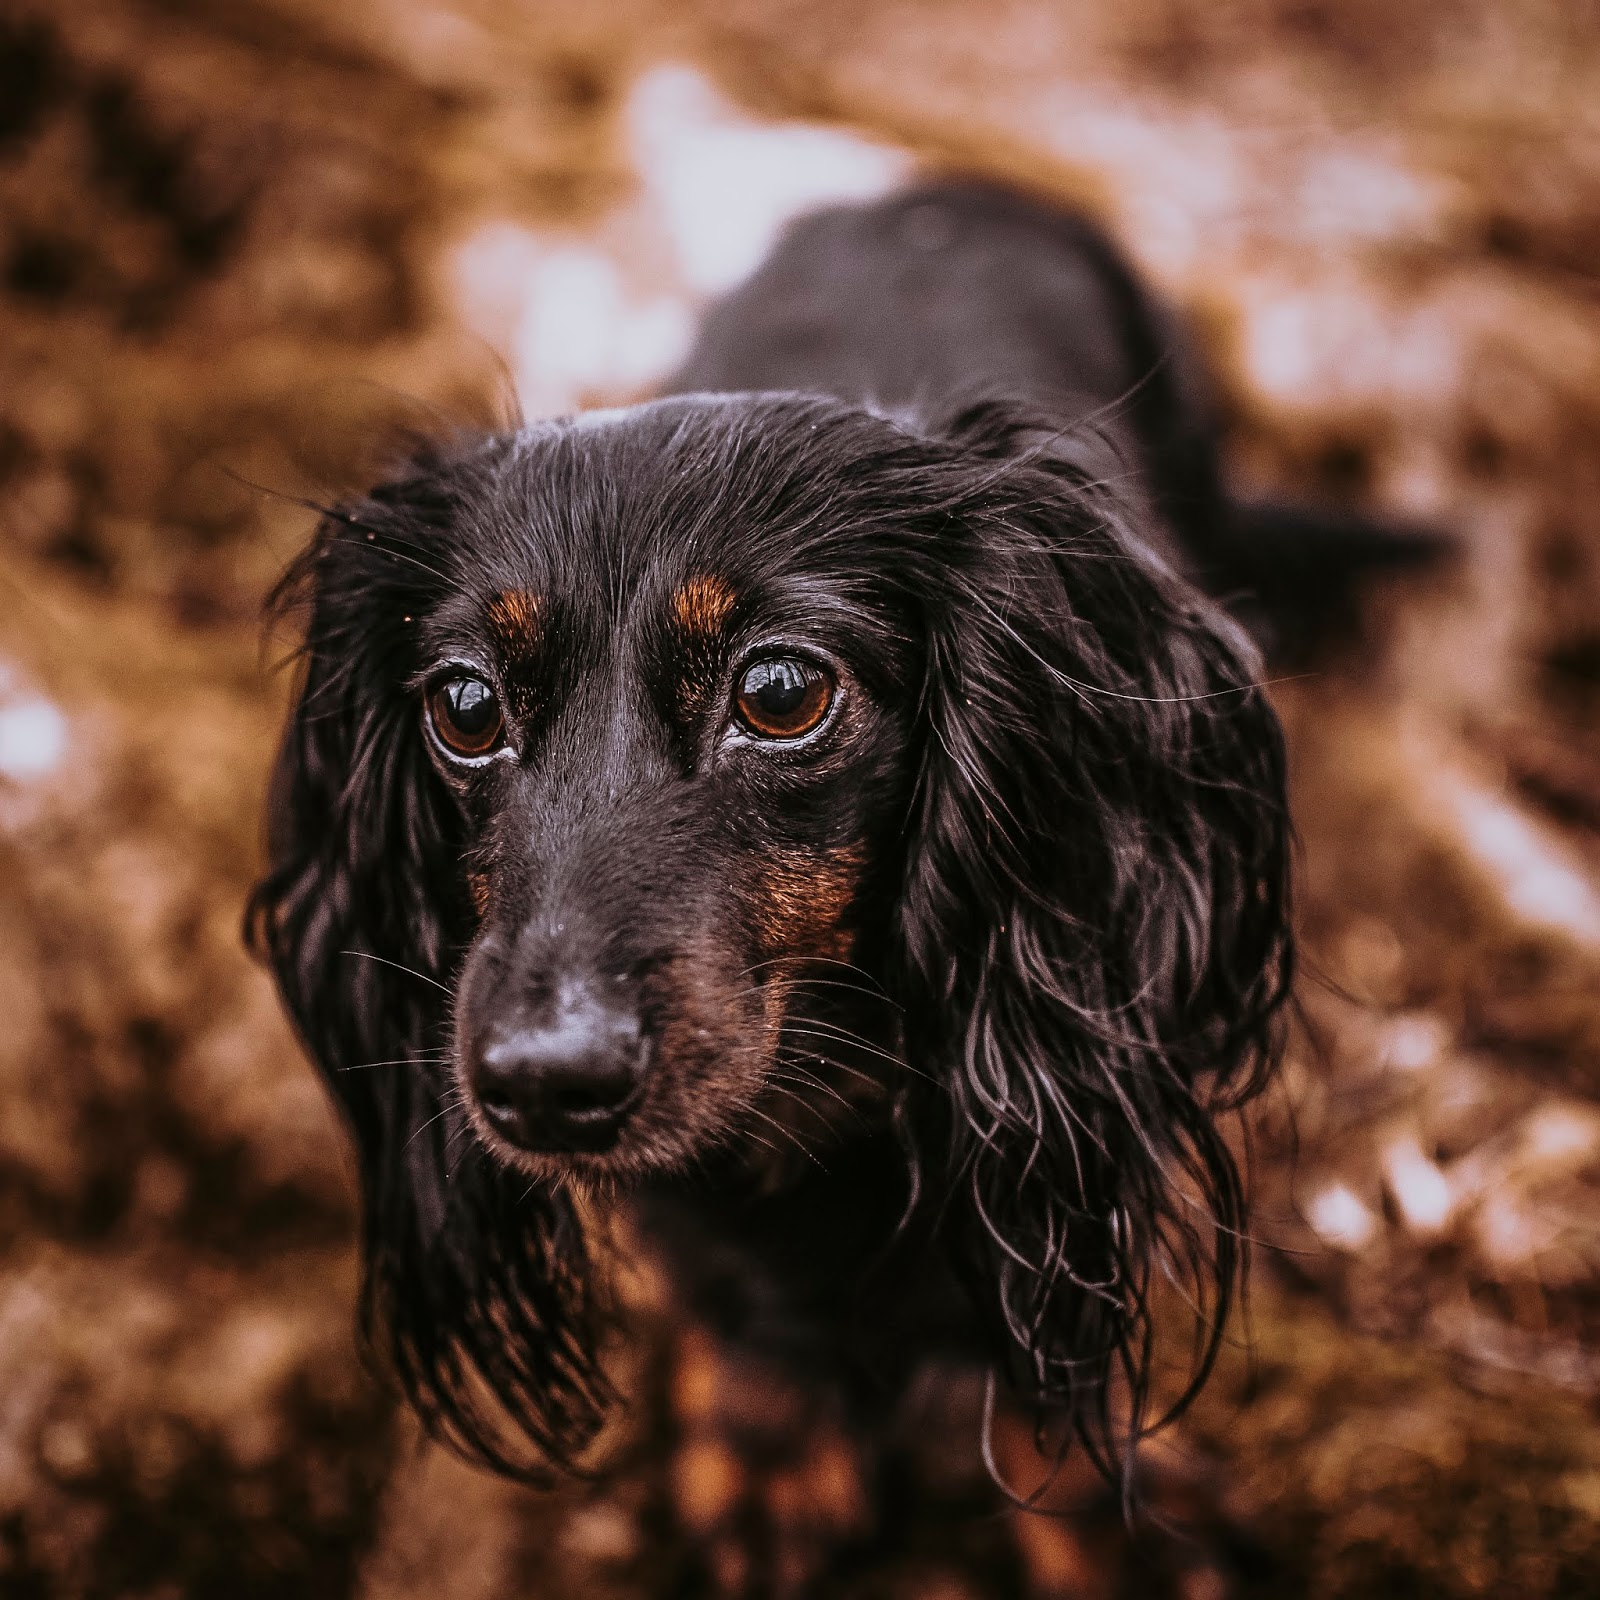 puppy dog eyes dachshund puppy autumn leaves liquid grain liquidgrain